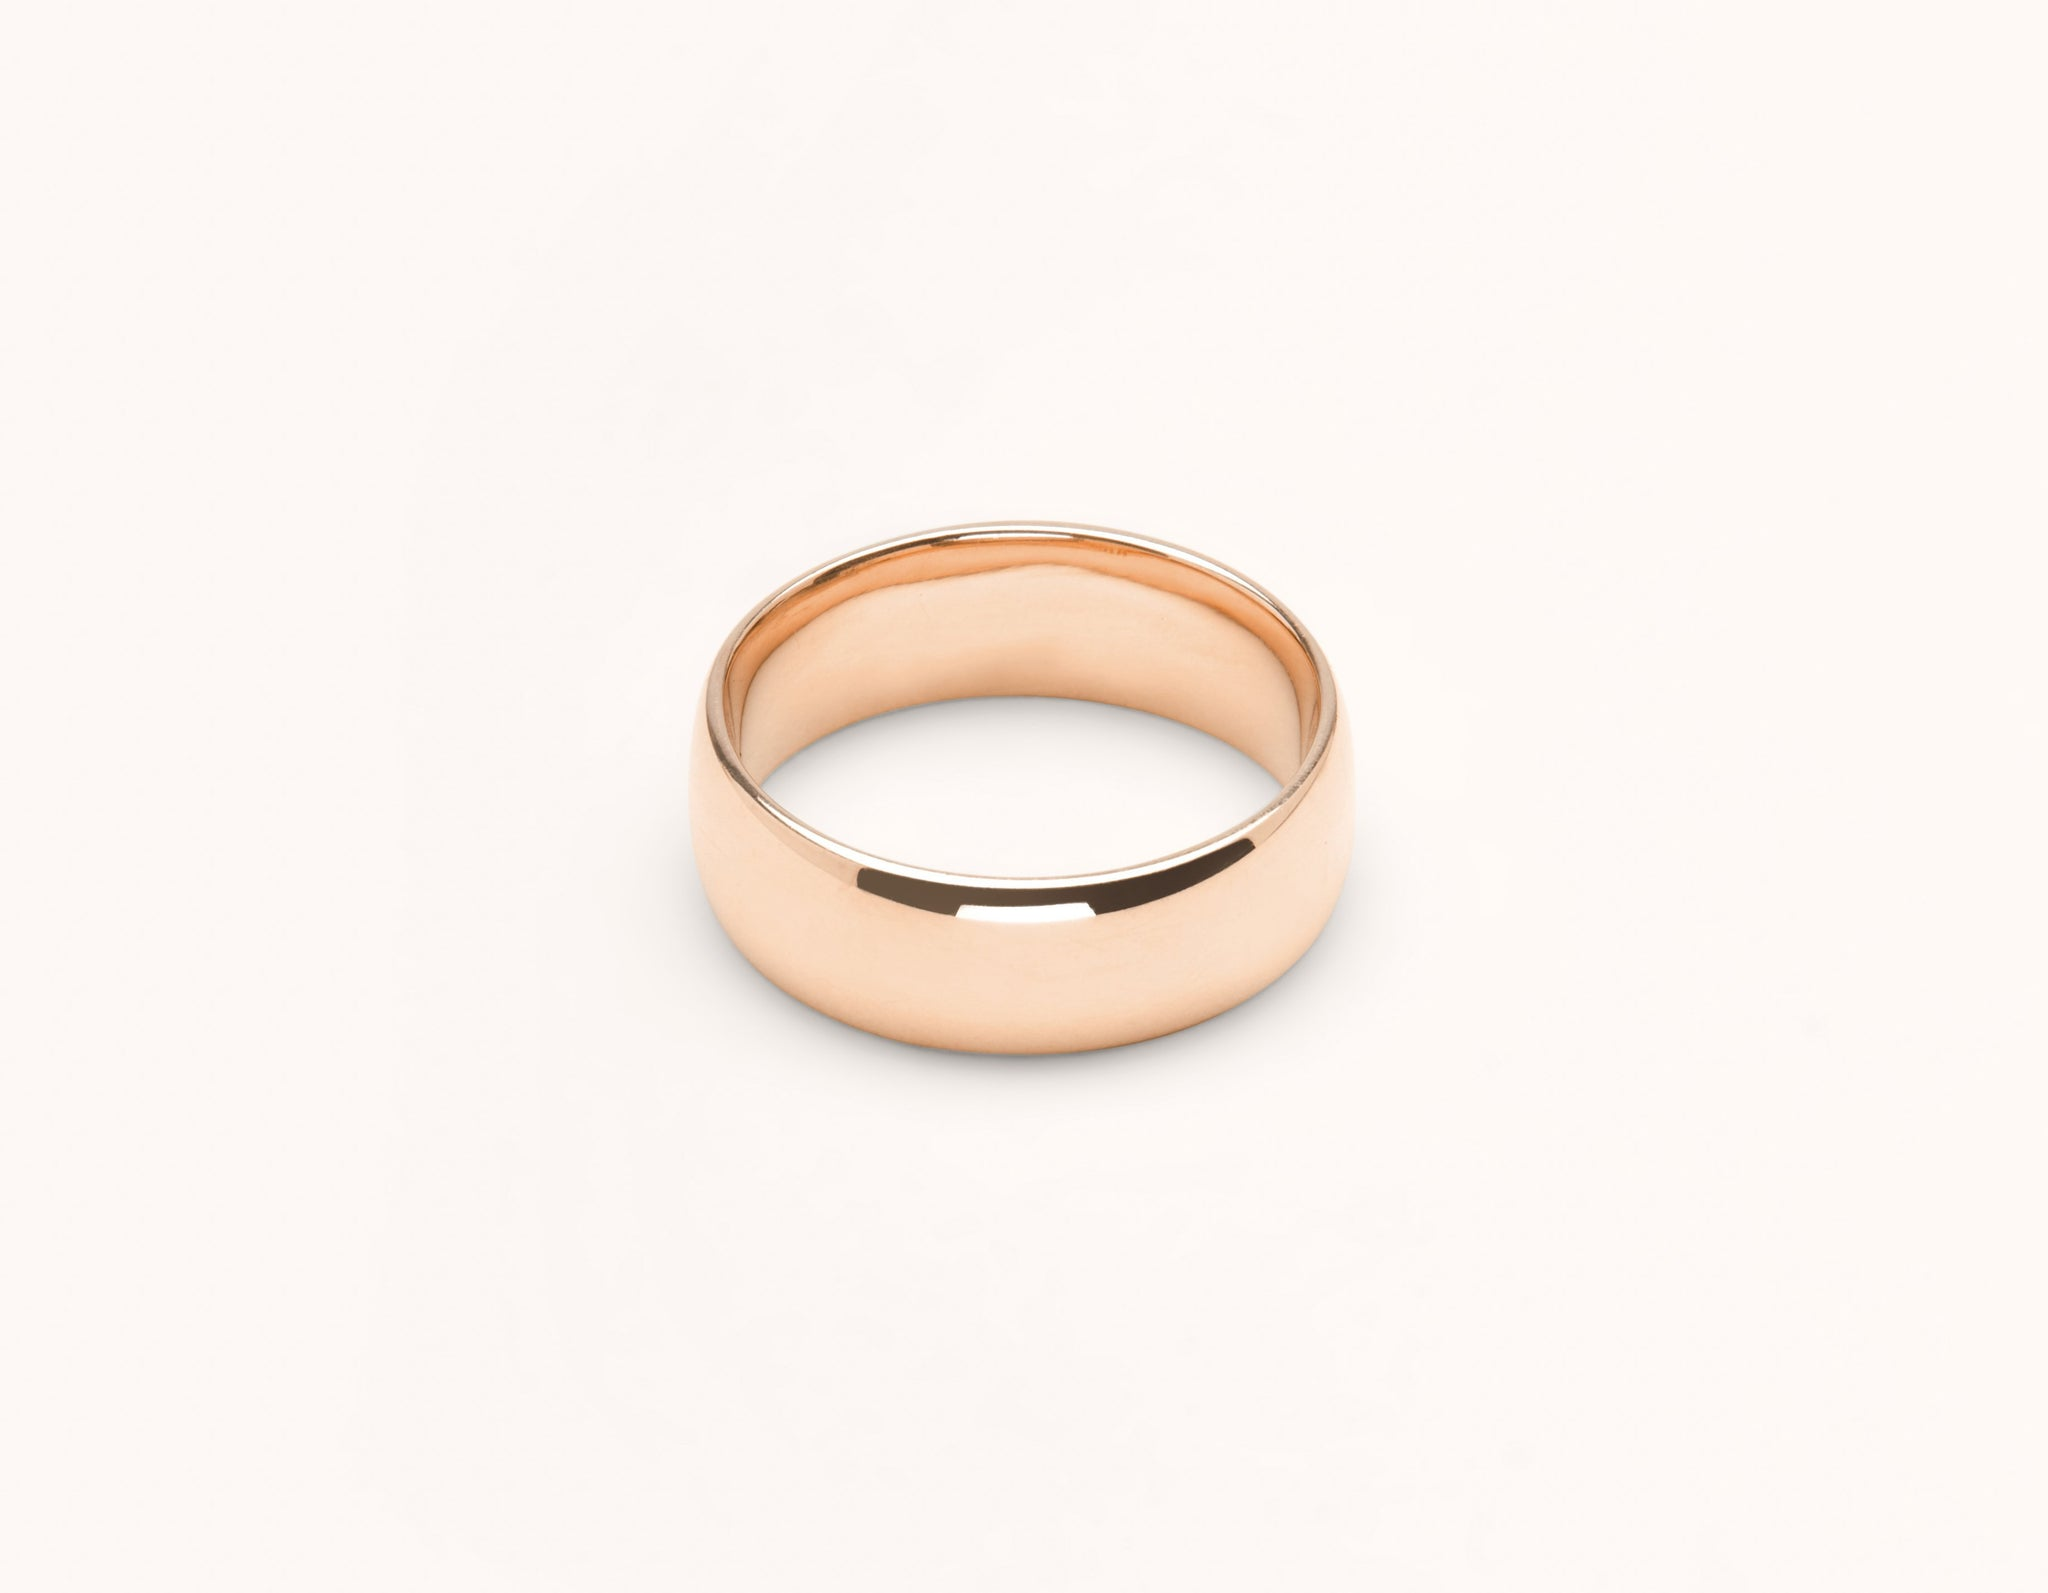 Simple modern 18k solid rose gold 6 mm Round men's women's Wedding Band Vrai & Oro